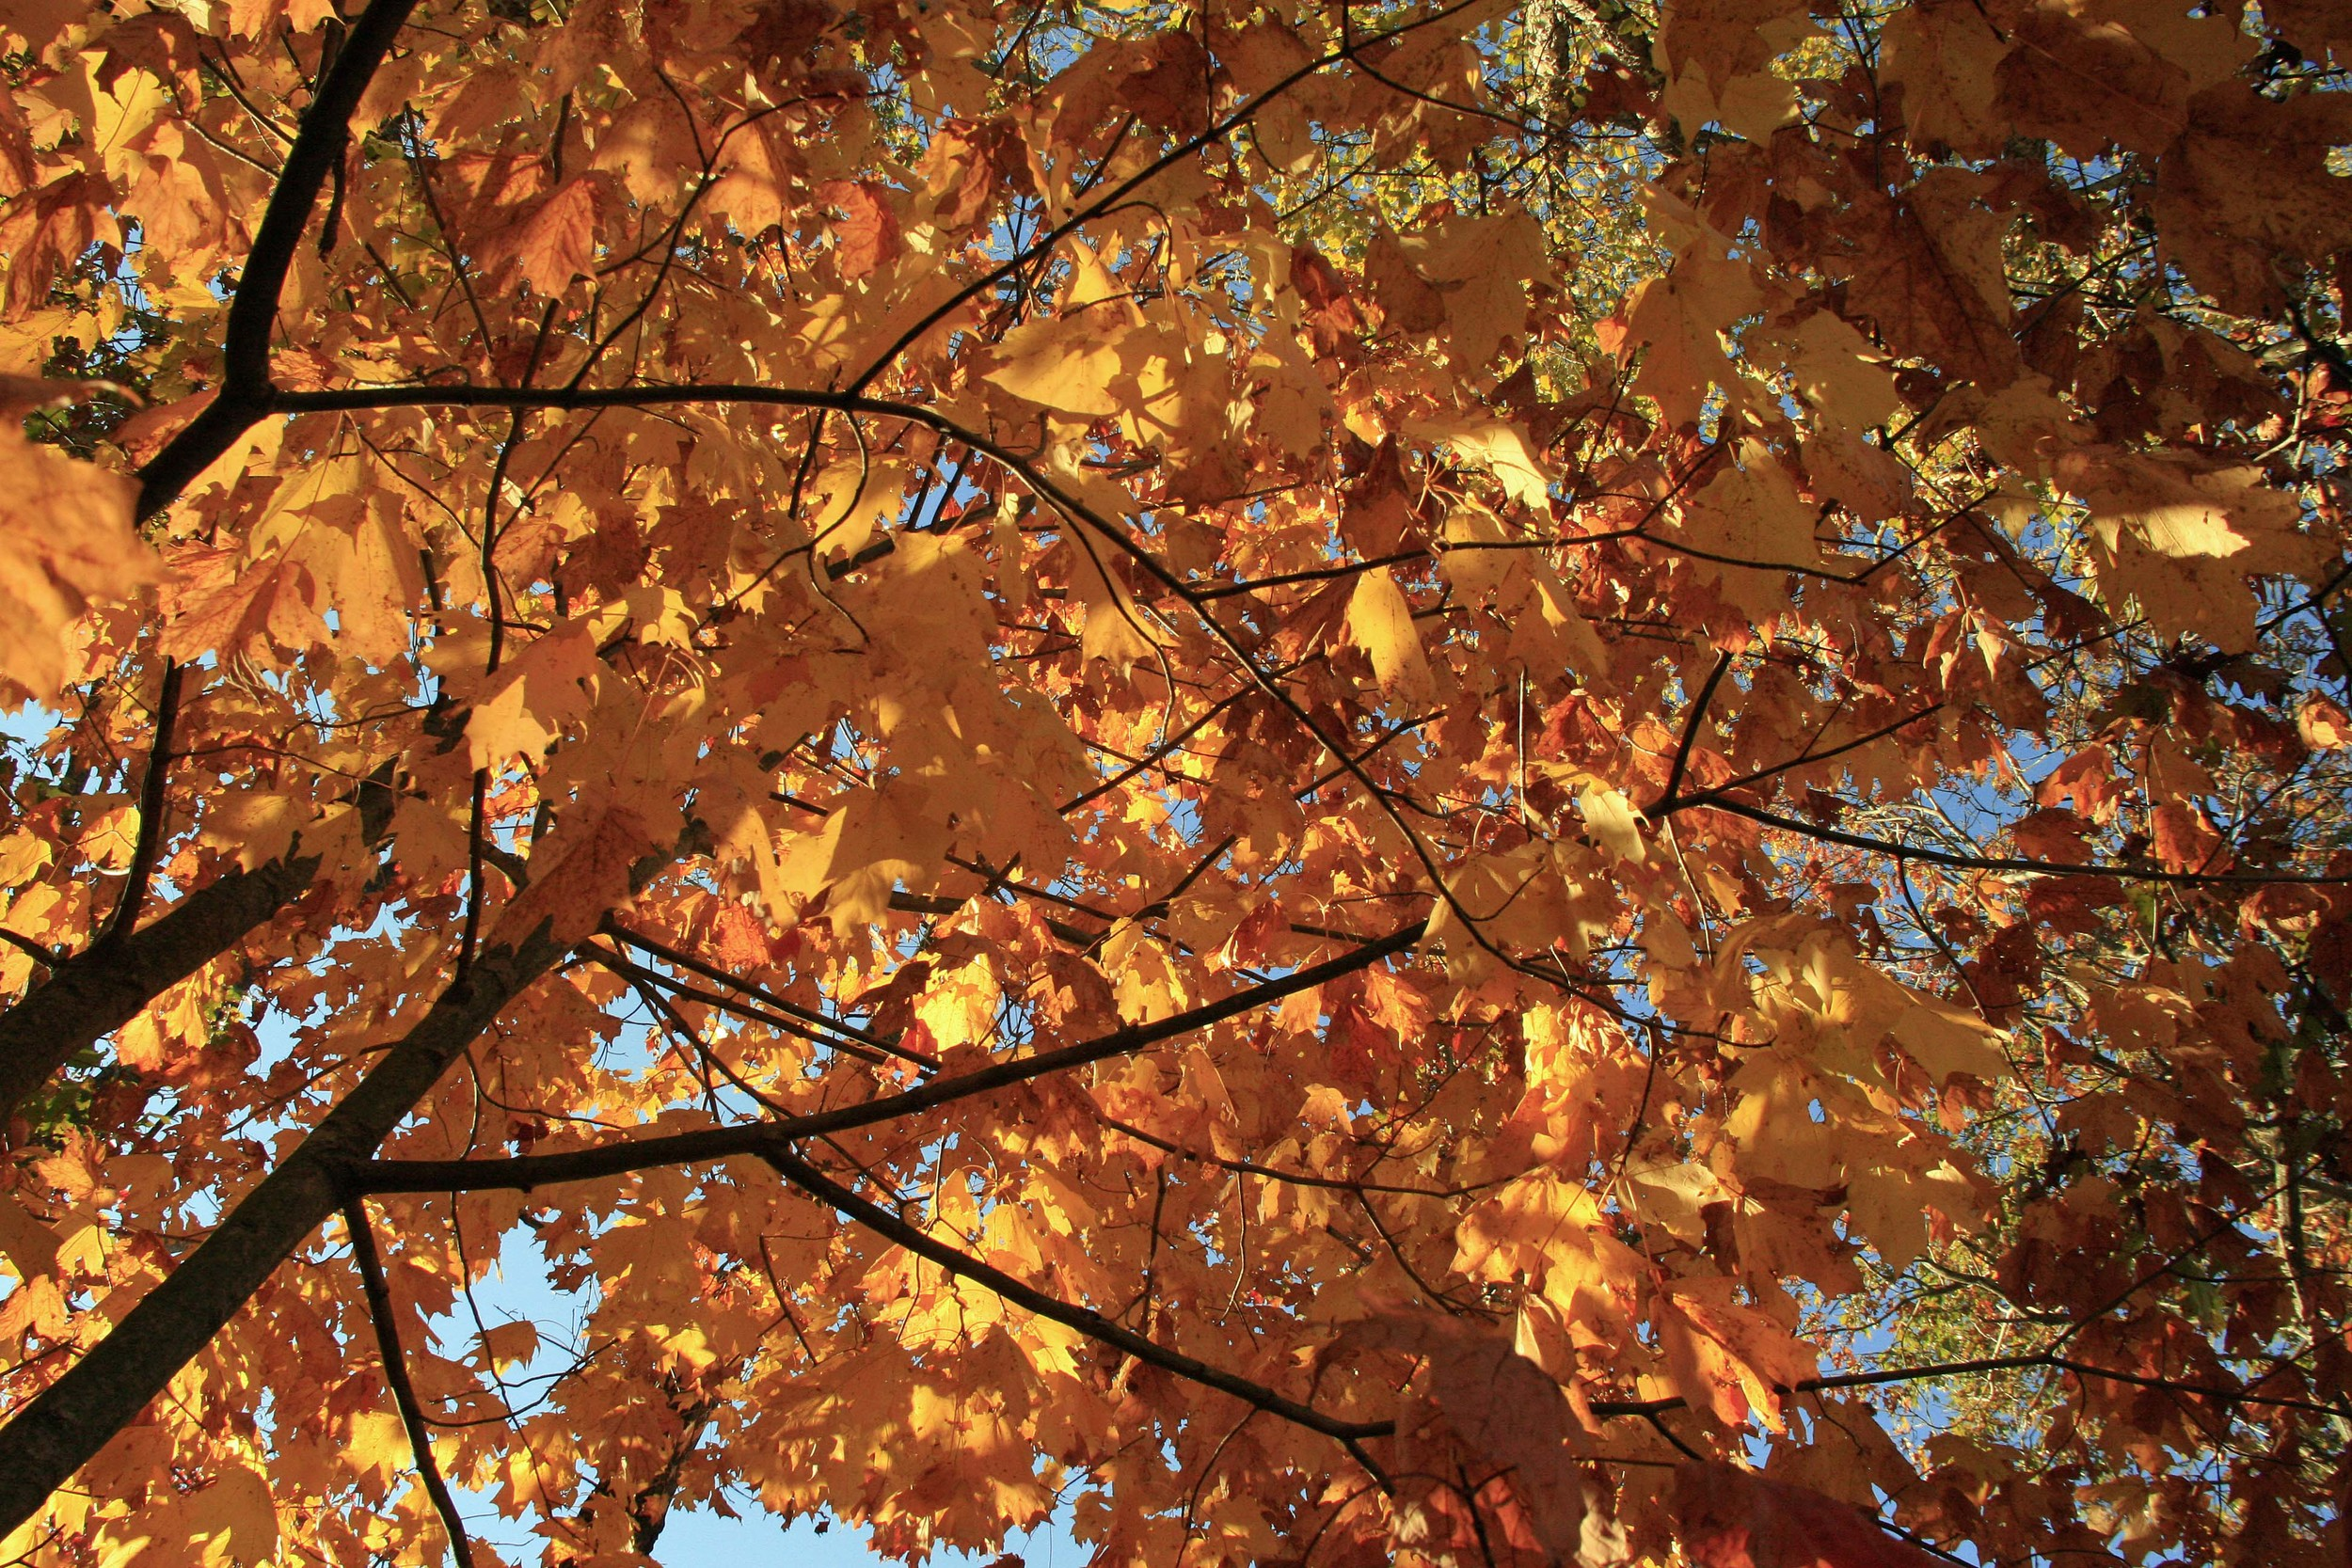 No matter what kind of creative work we do, it's impossible to exist as a single leaf on a big, empty tree.